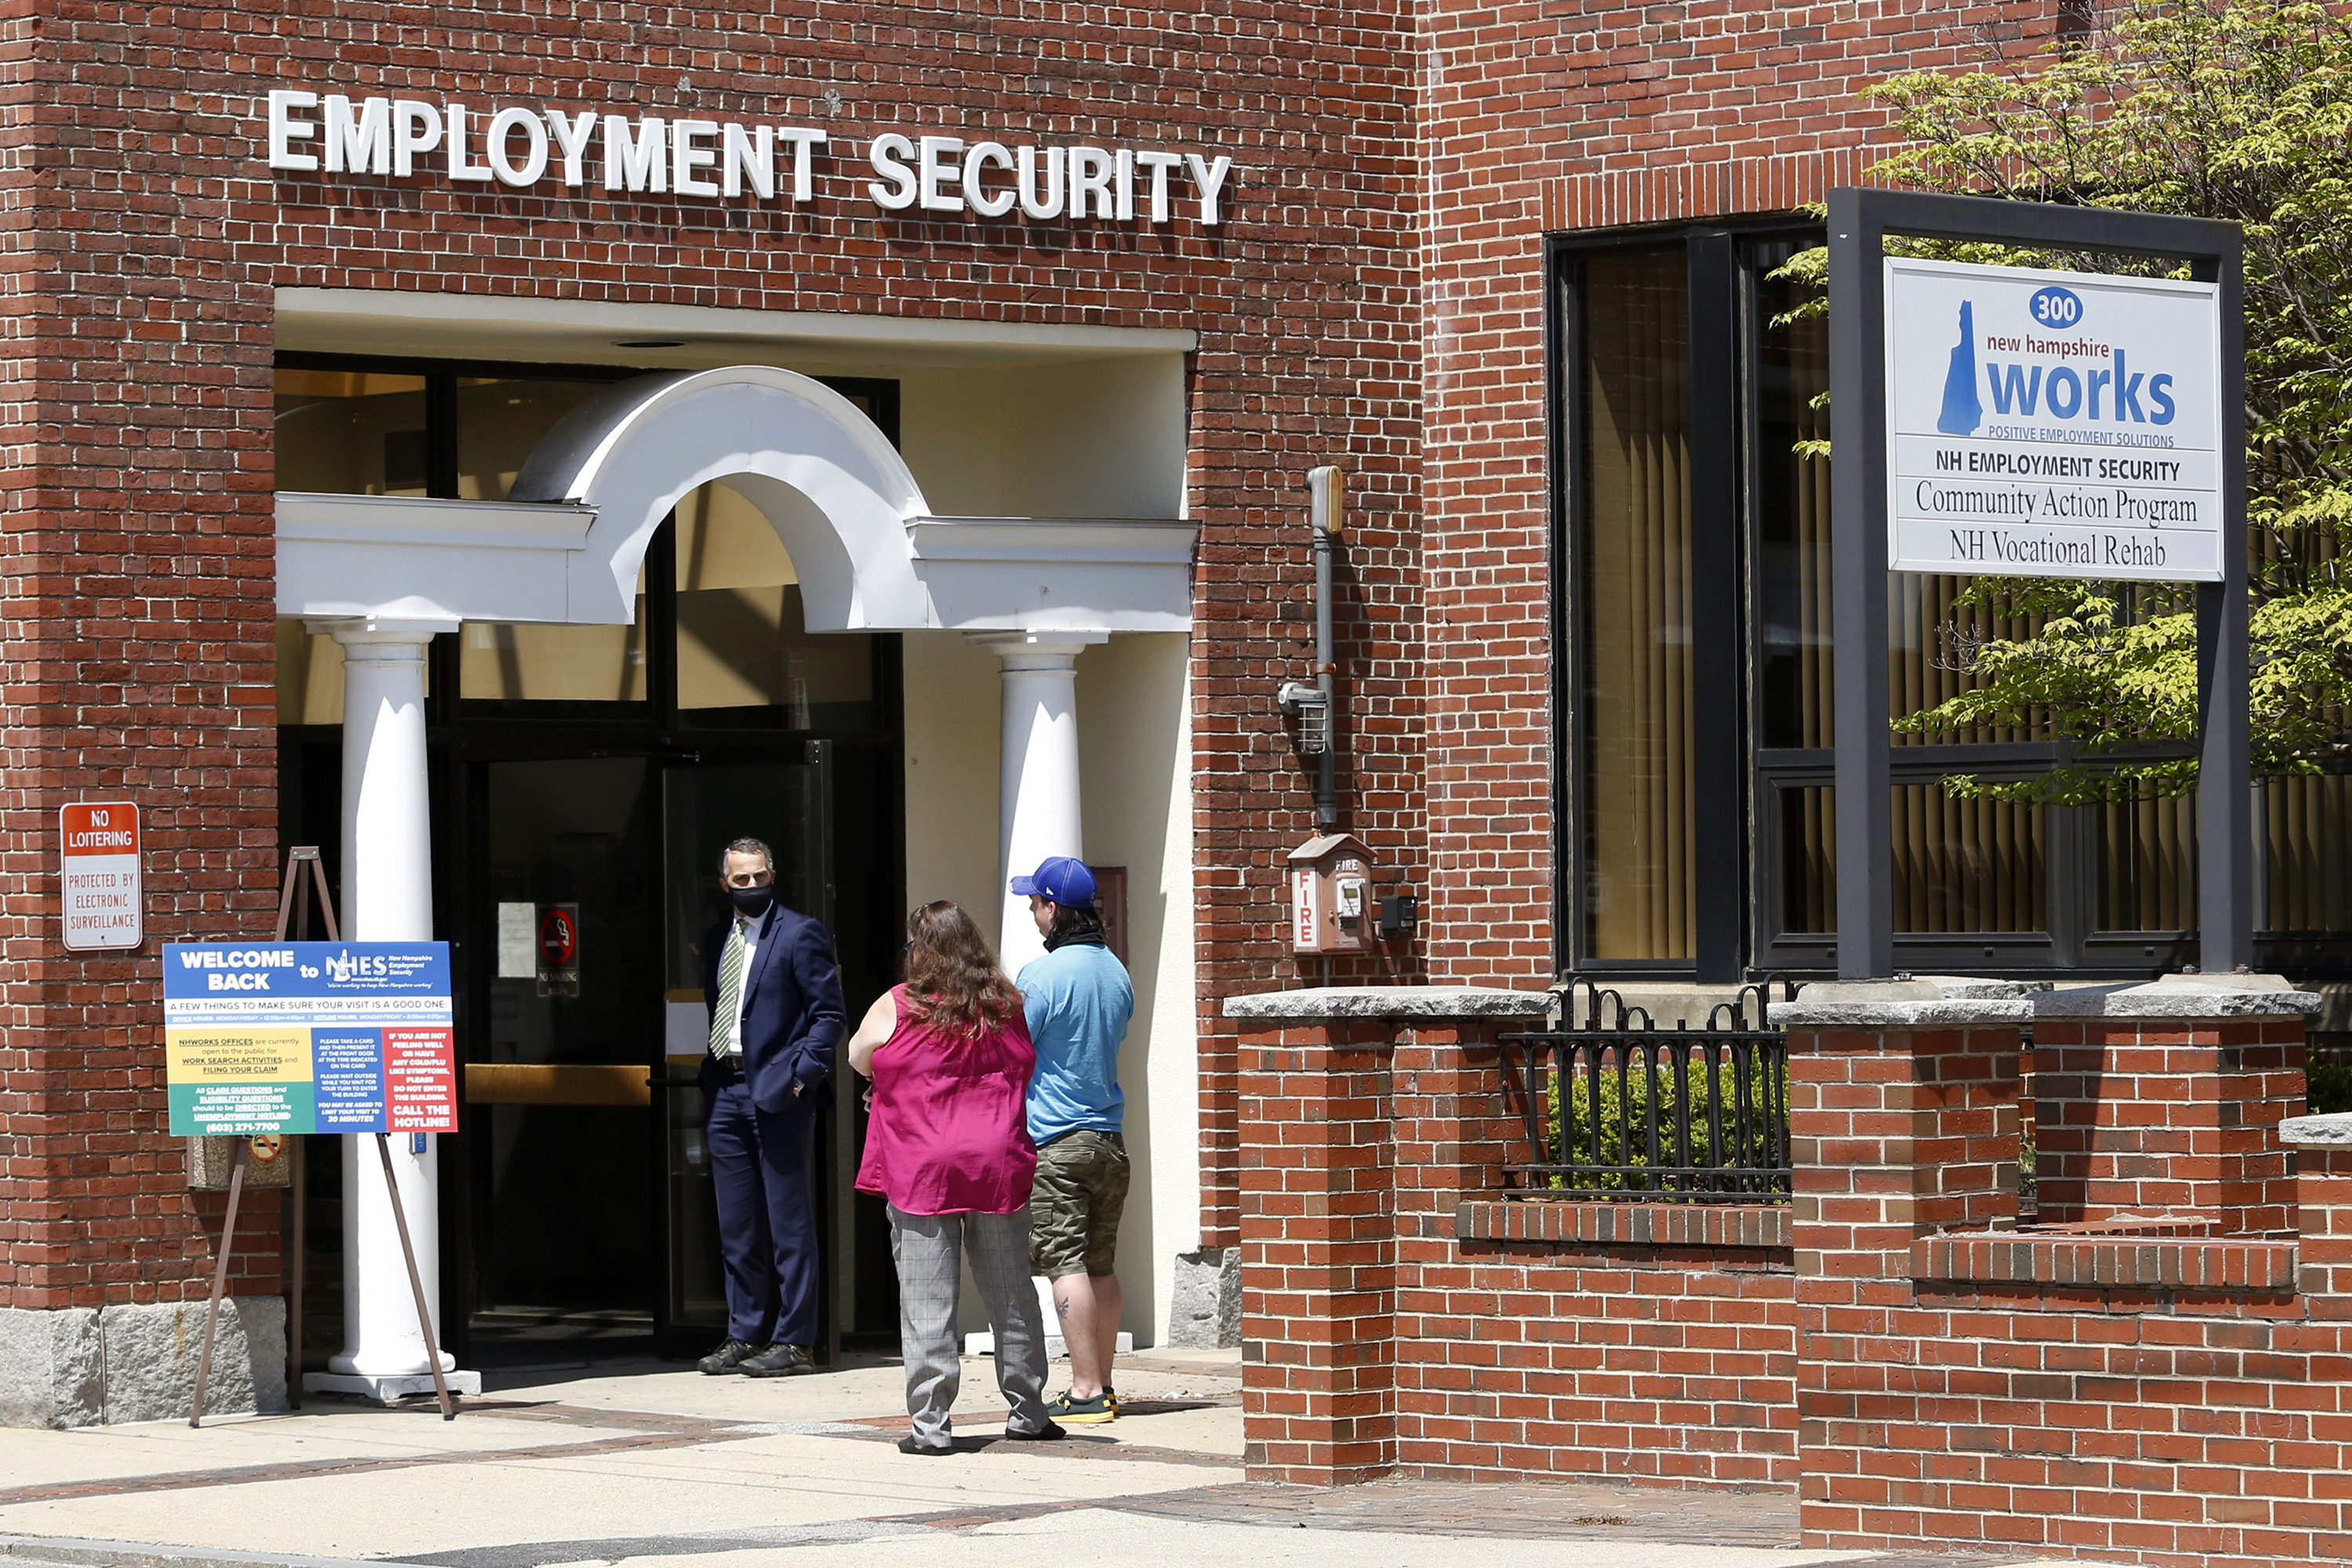 Job seekers line up outside the New Hampshire Works employment security job center, Monday, May 10, 2021, in Manchester, N.H.